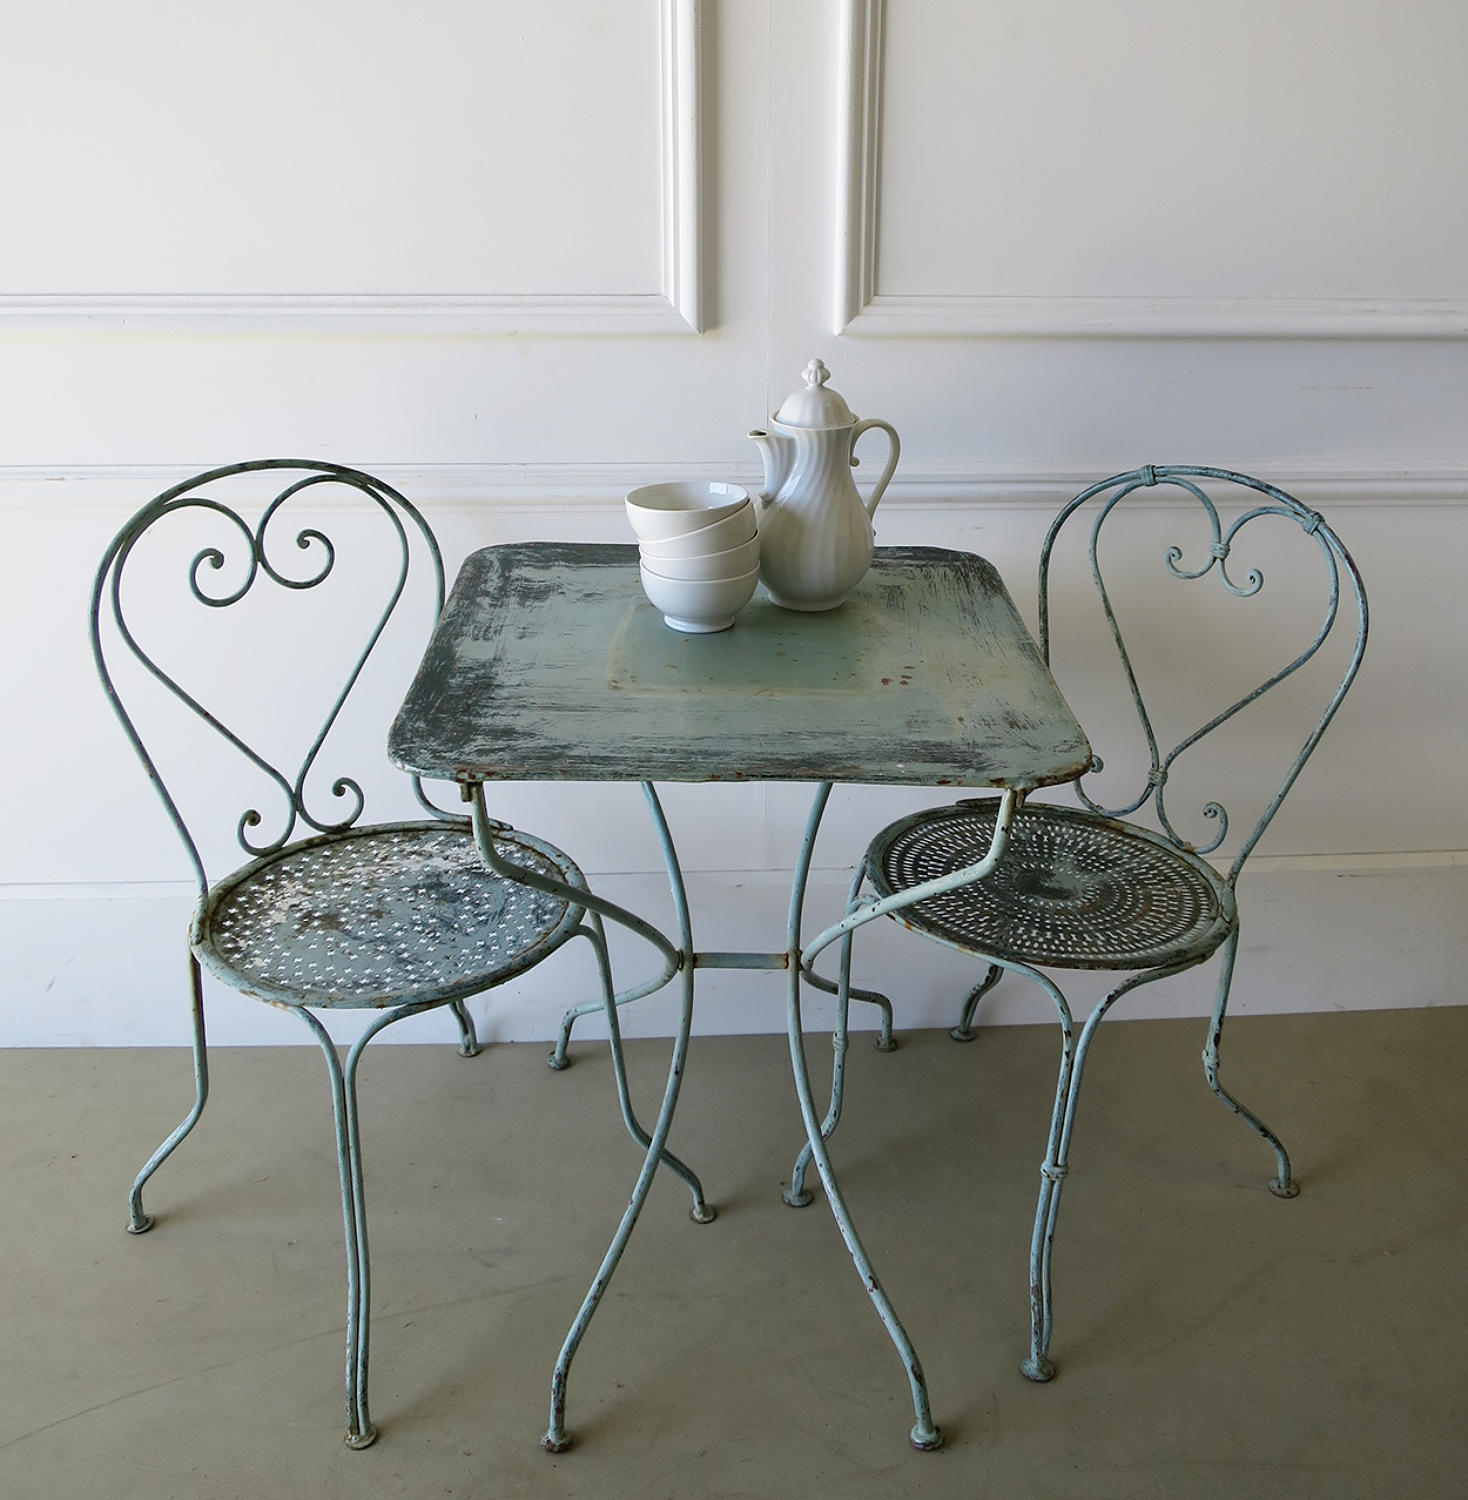 French Iron Cafe table with 2 chairs